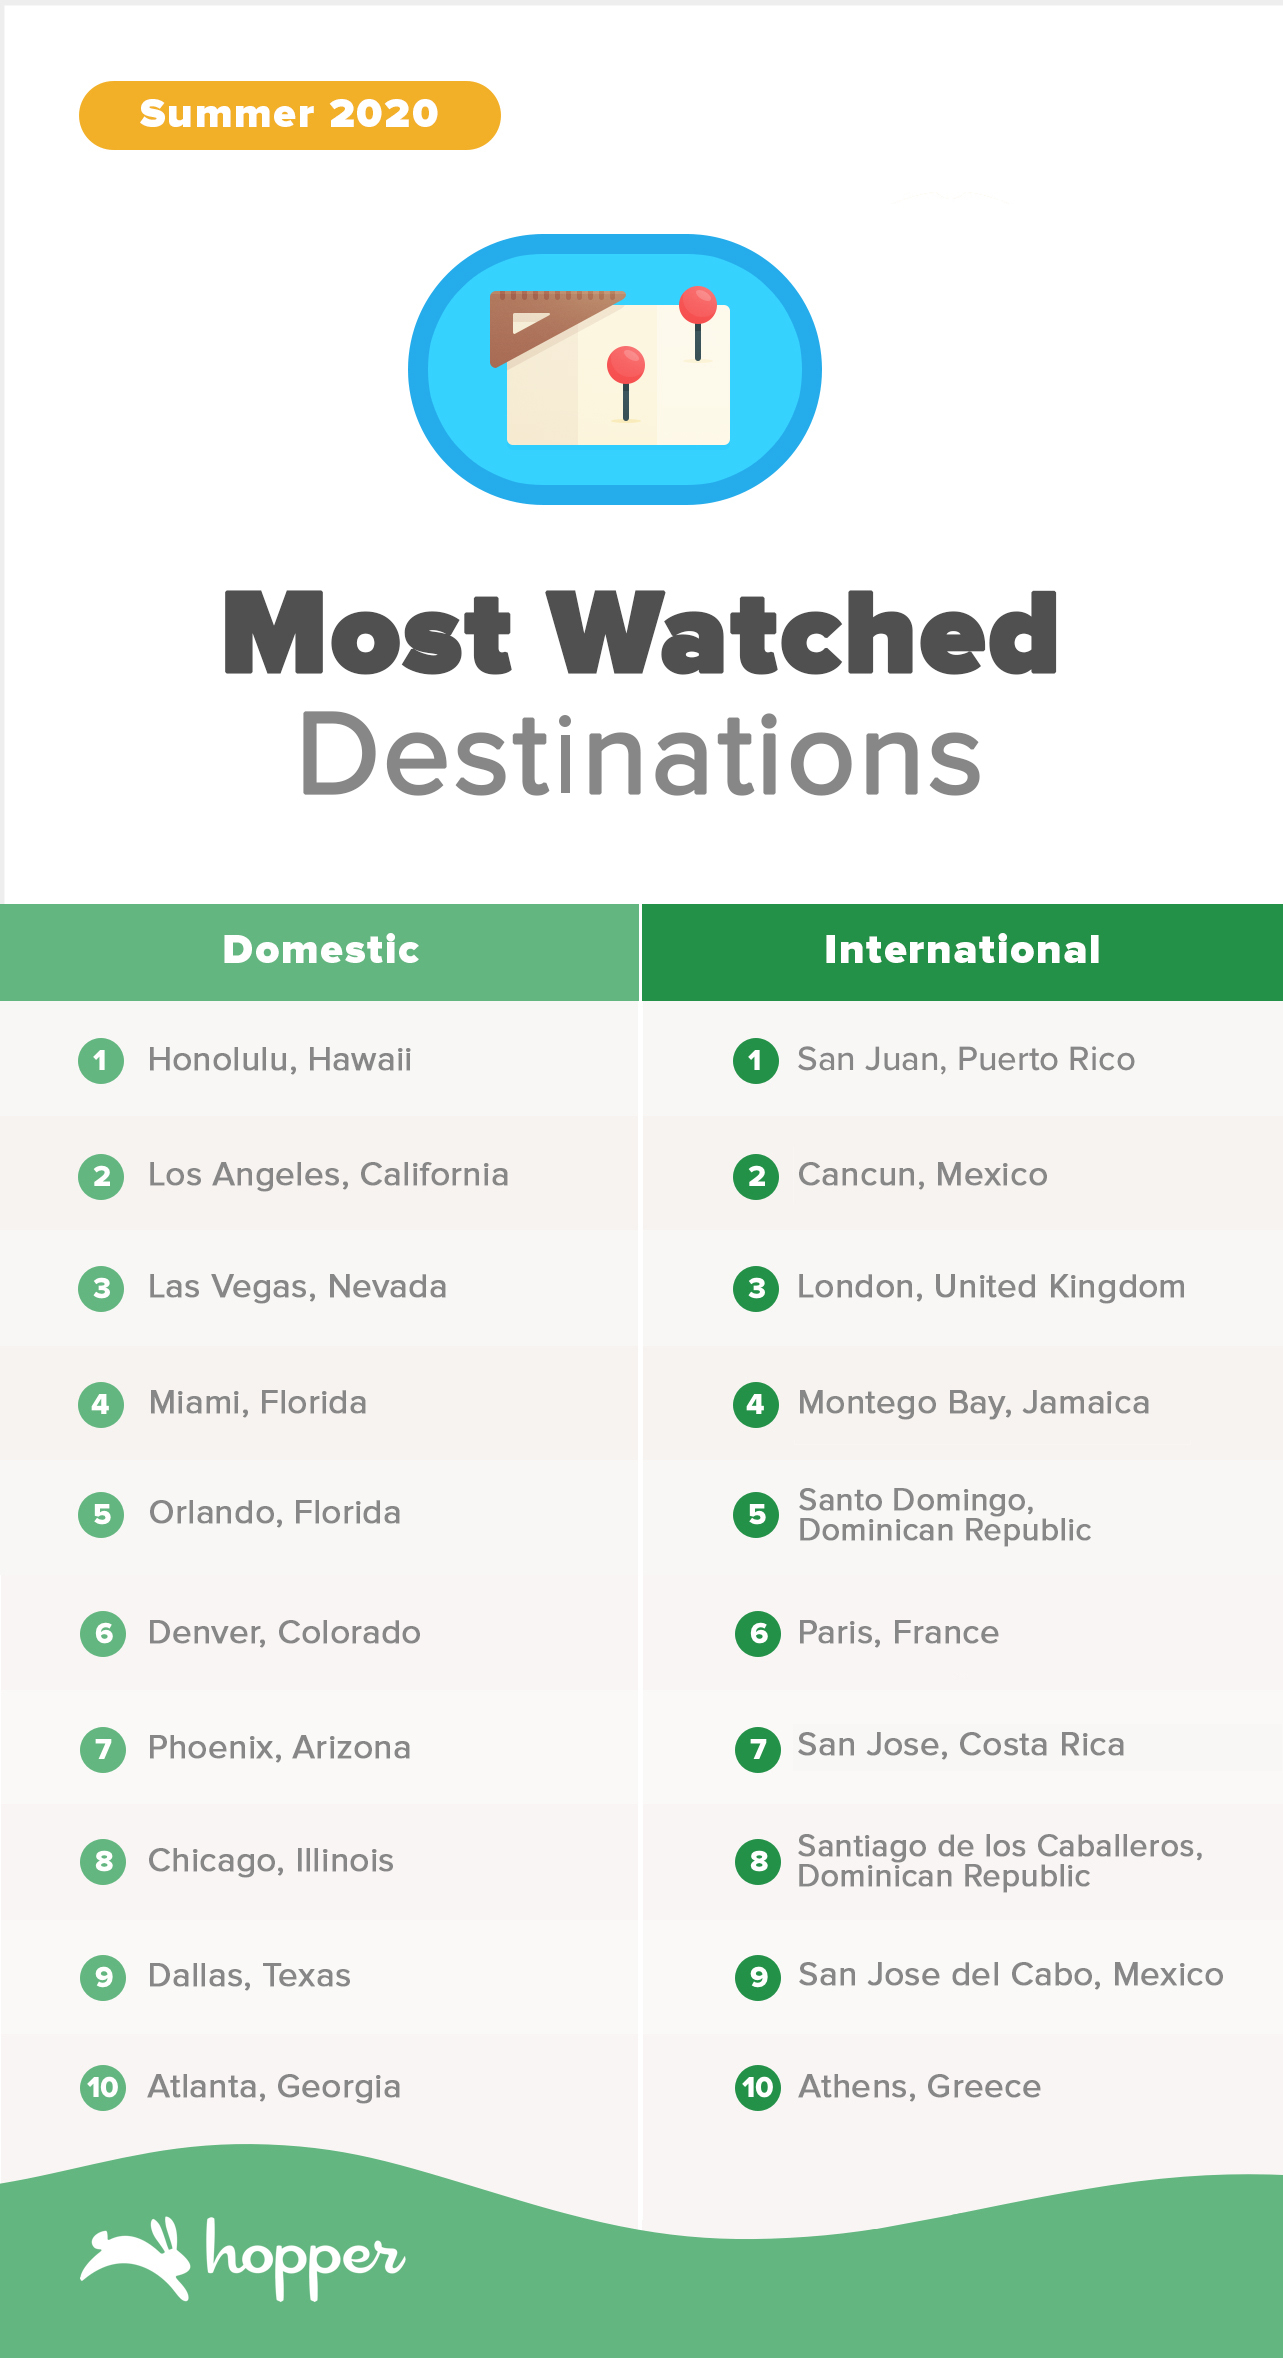 Most Watched Summer Destinations